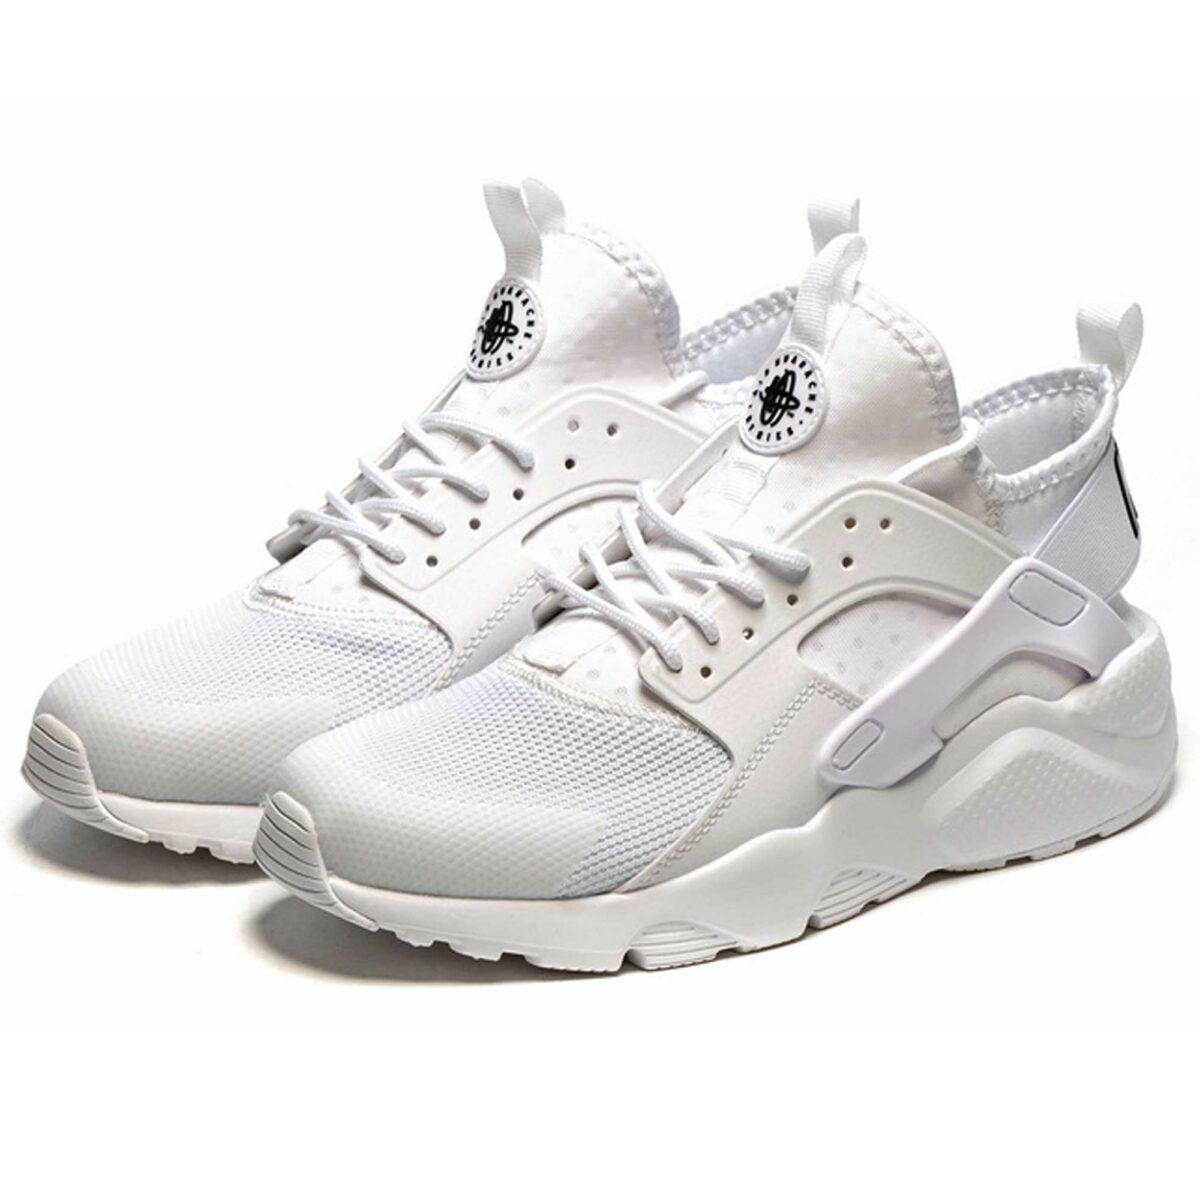 nike air huarache ultra br triple white 819685_101 купить